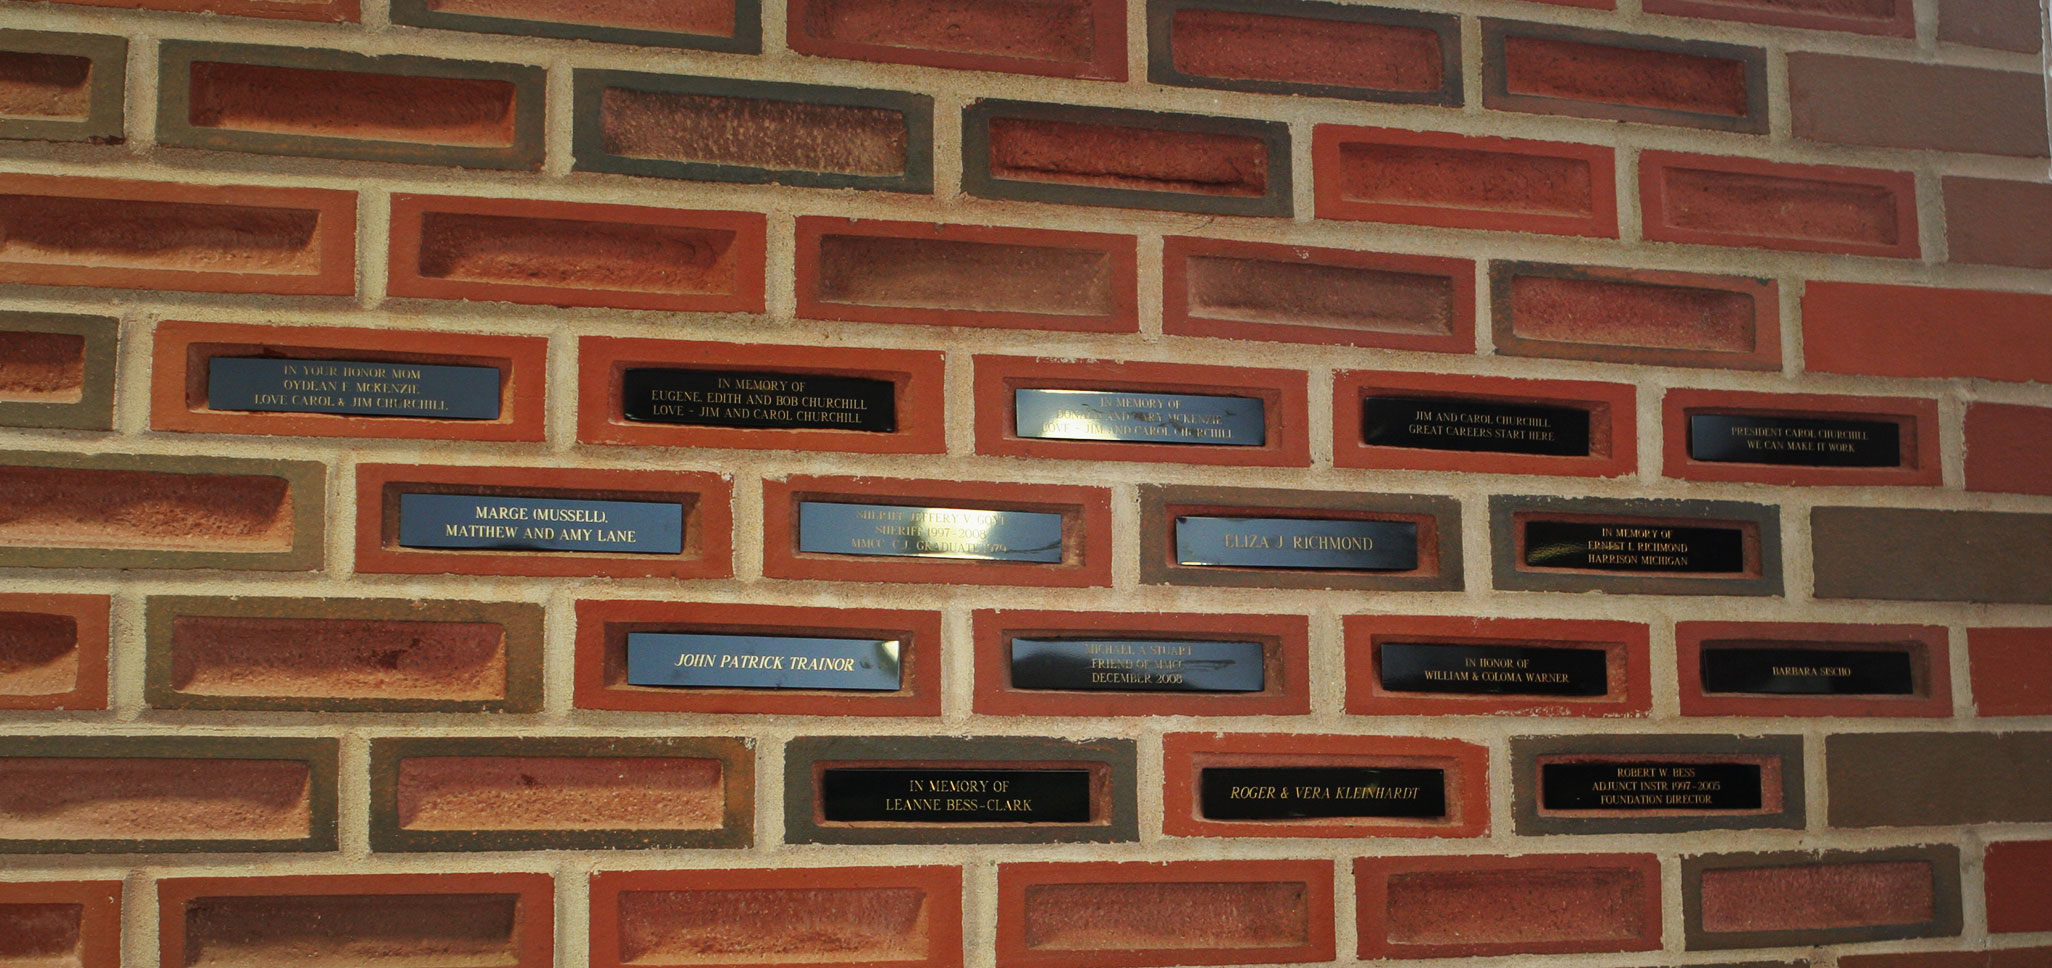 A brick wall that holds multiple bricks with engraved placards on them. Some of them are memorials, some are the names of the donors themselves.